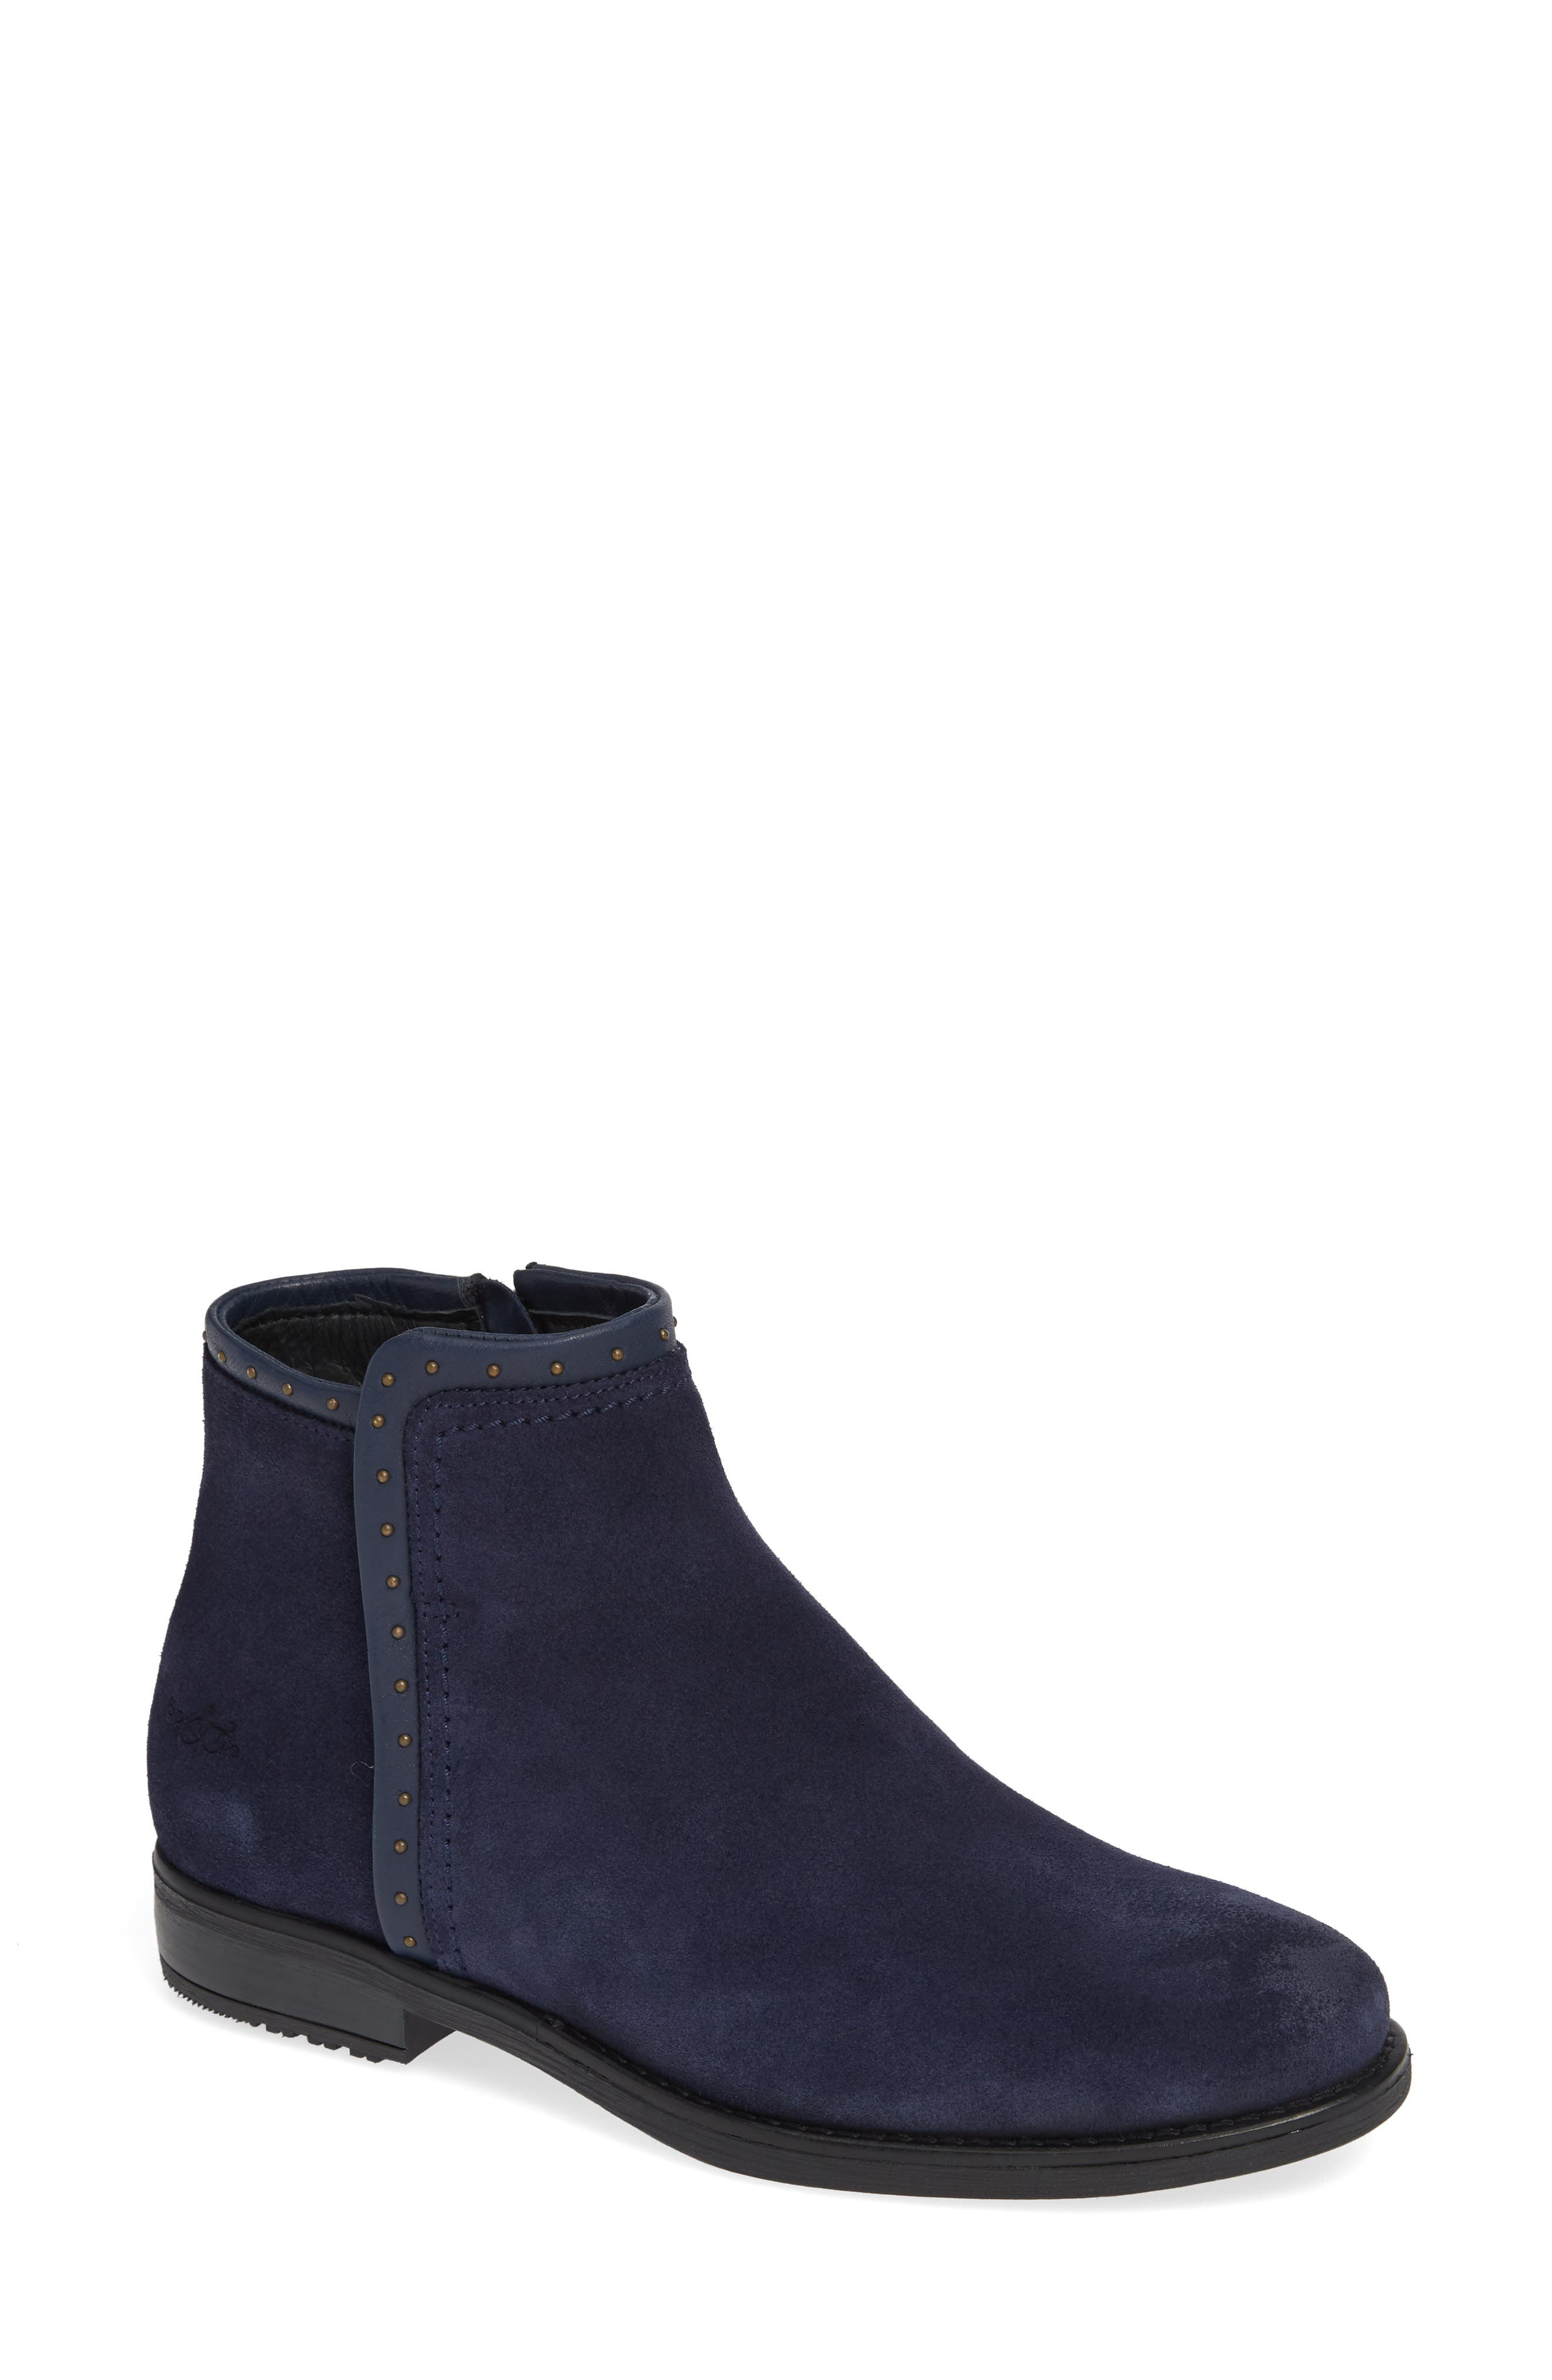 Bos. & Co. Ribos Bootie, Blue